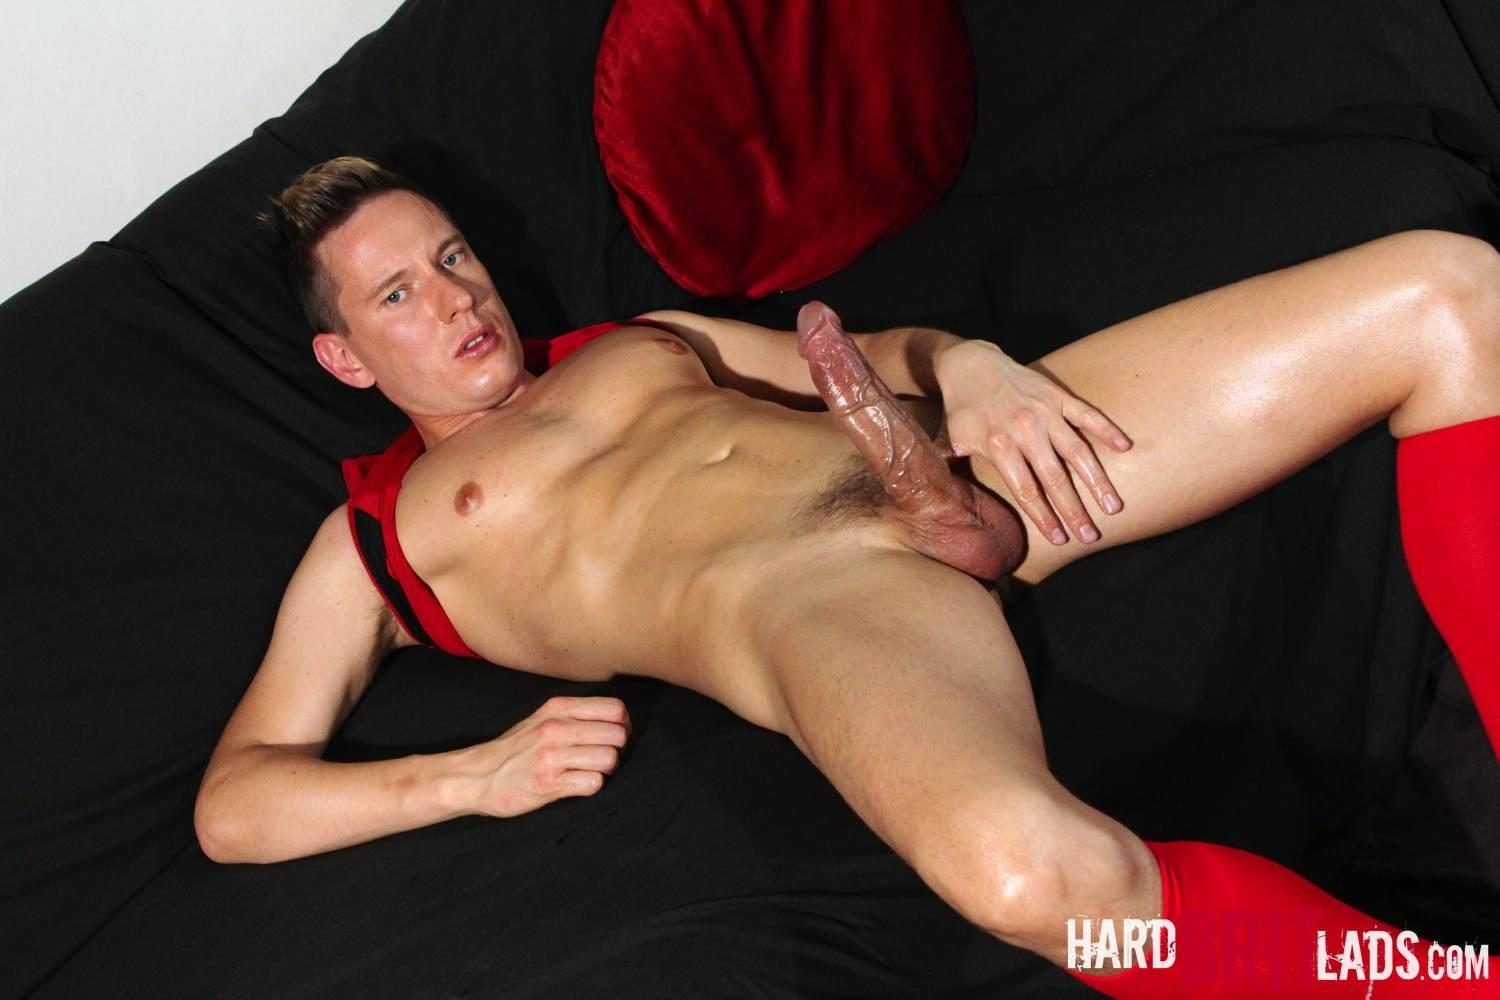 Hard Brit Lads James Hard Soccer Player Jerking his Big Uncut Cock Amateur Gay Porn 20 Straight Soccer Player Jerking Off His Huge Uncut Cock